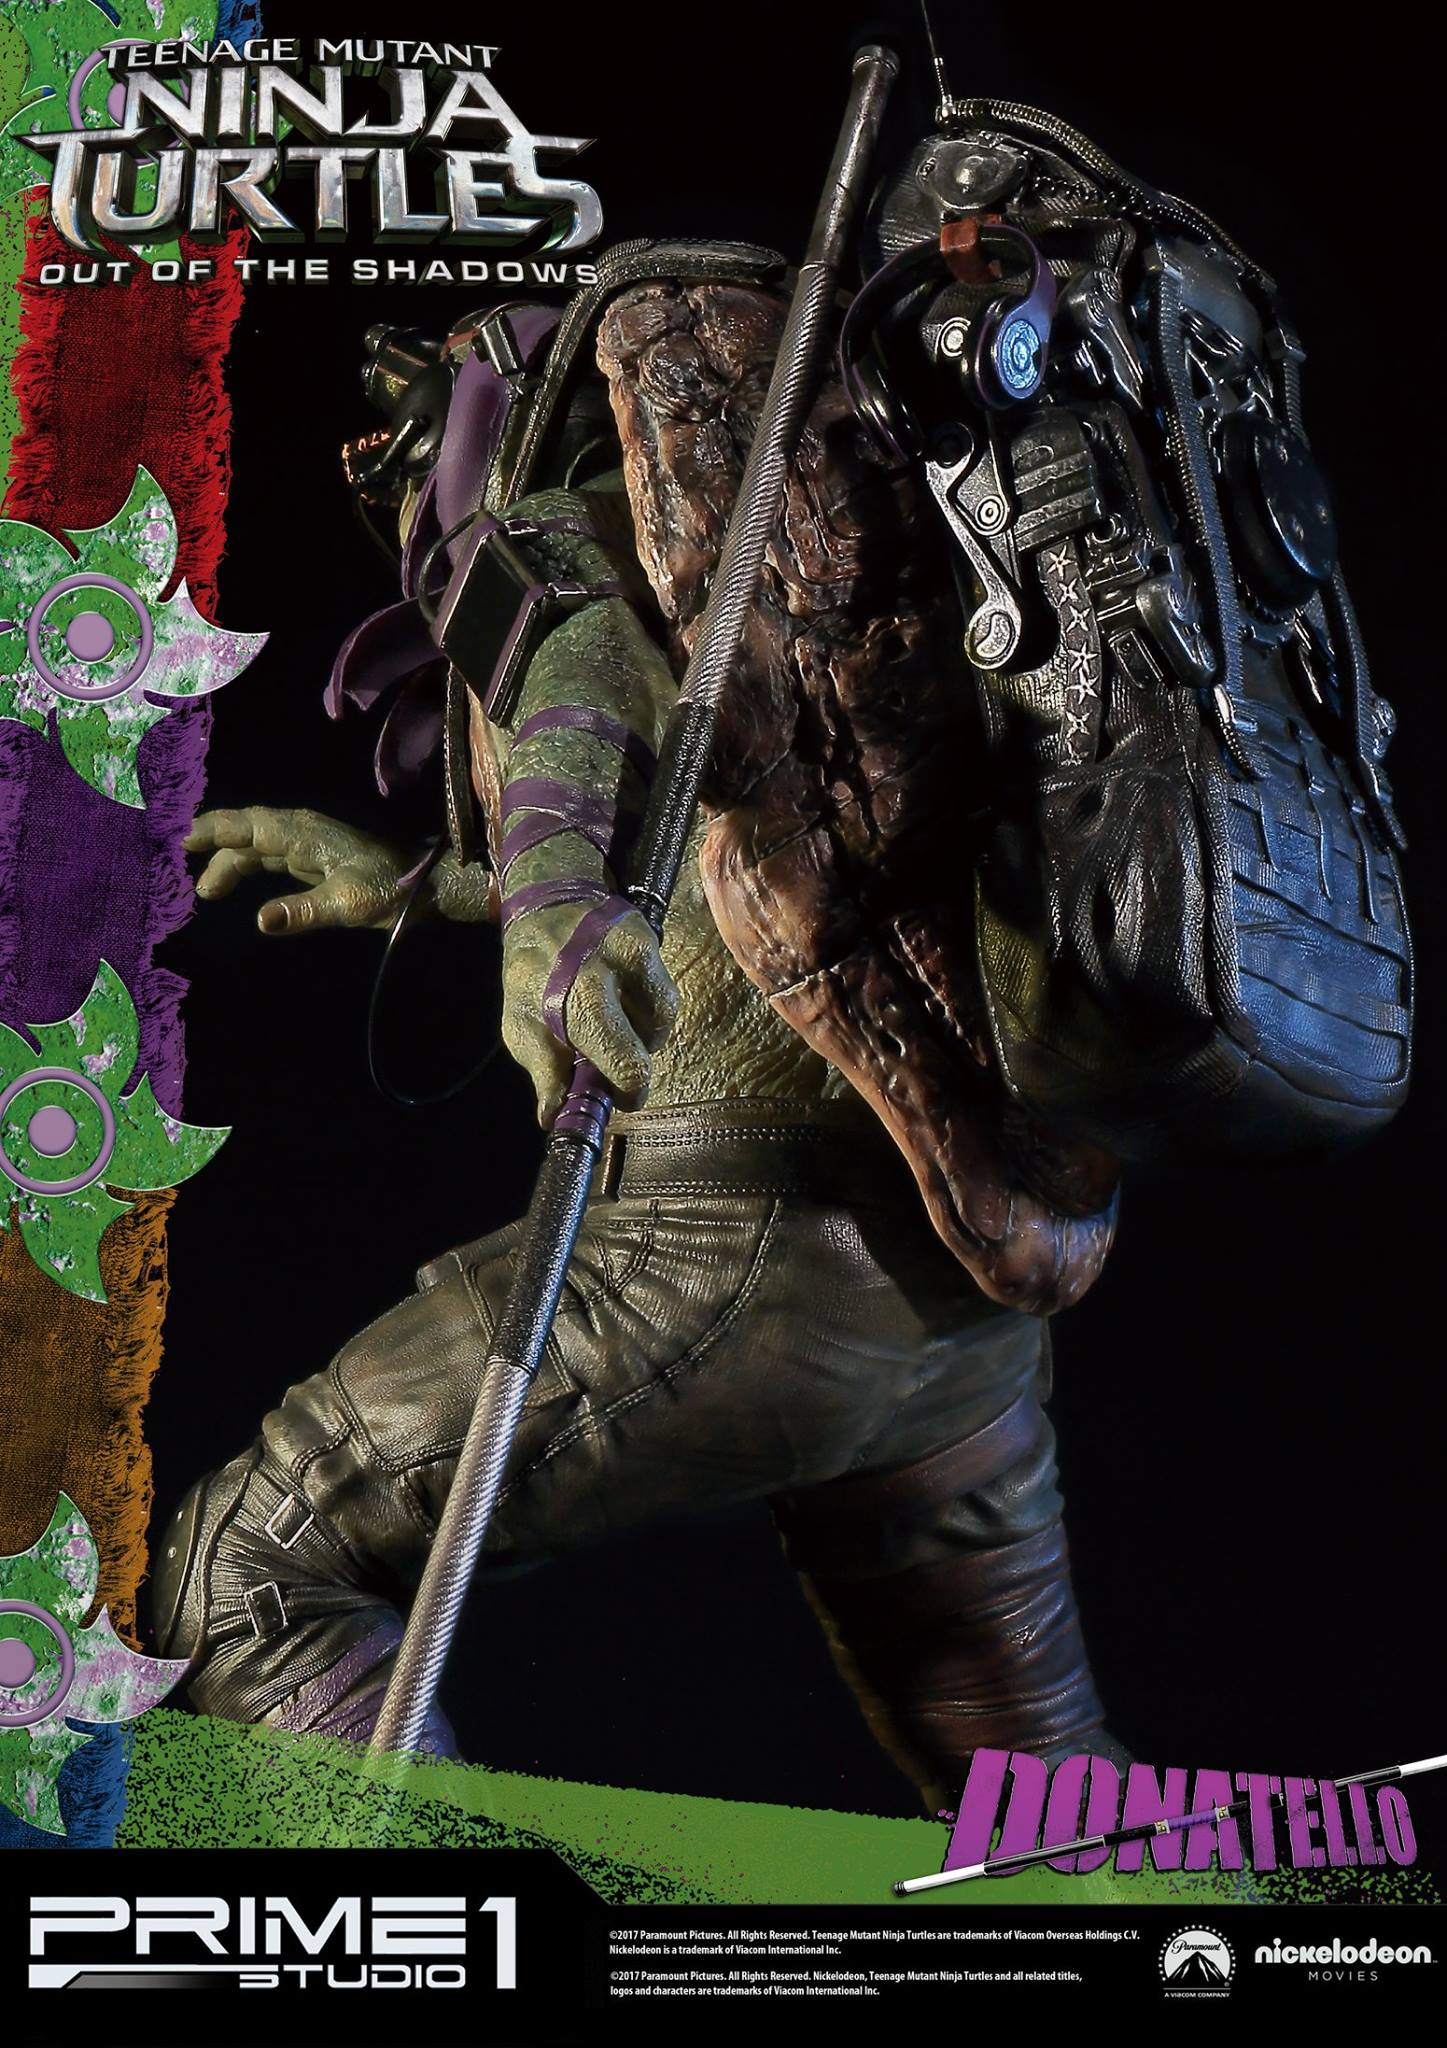 TMNT-Out-of-the-Shadows-Donatello-Statue-008.jpg